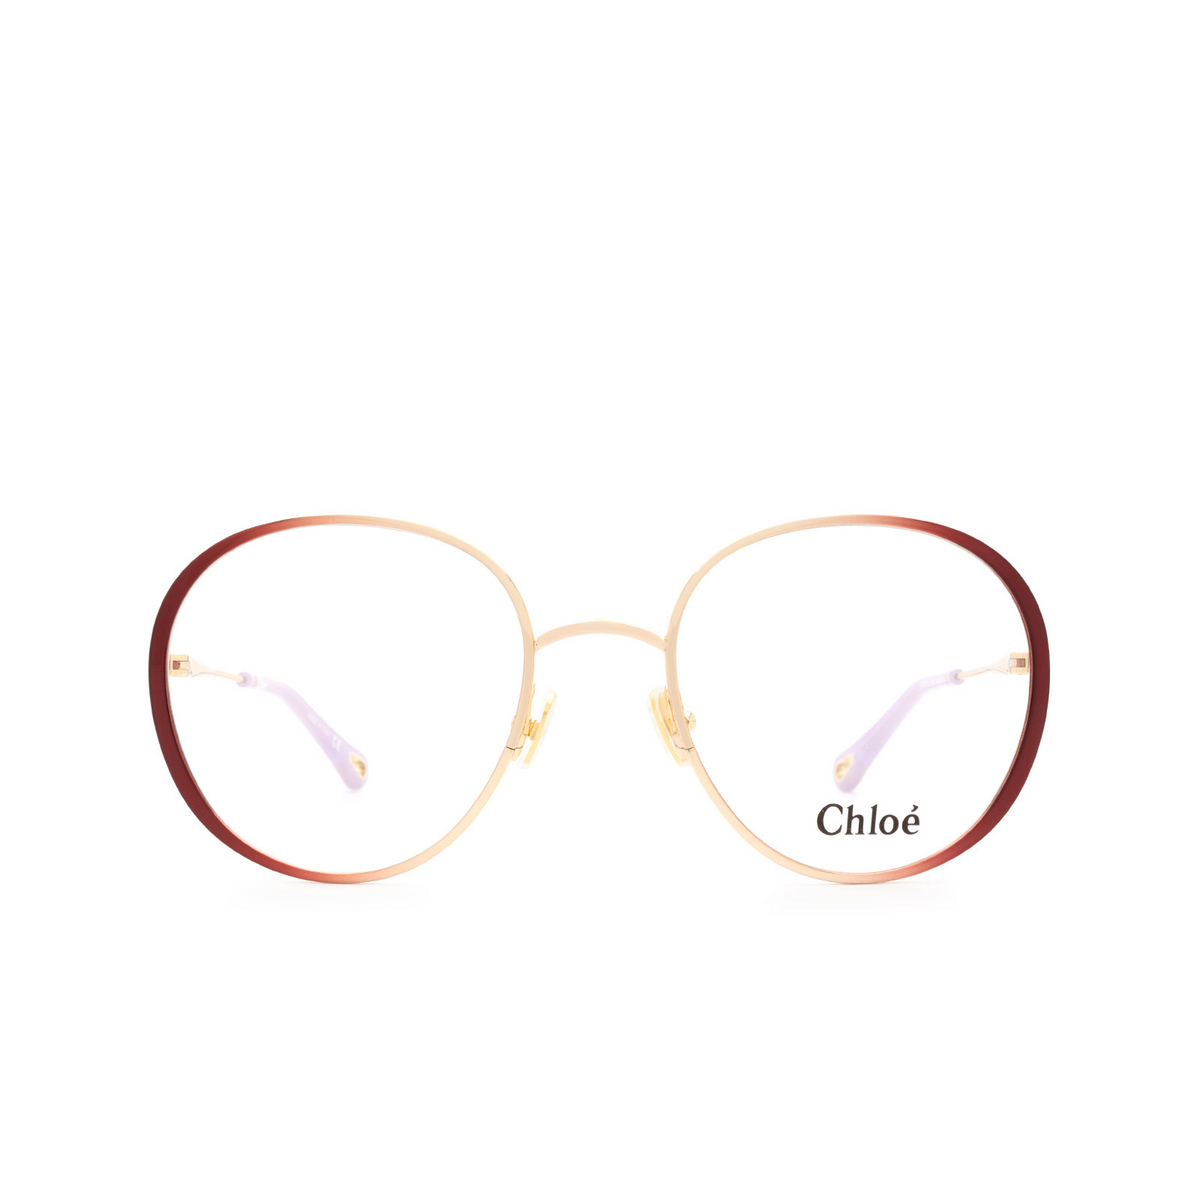 Chloé® Round Eyeglasses: CH0018O color Gold & Burgundy 001 - front view.